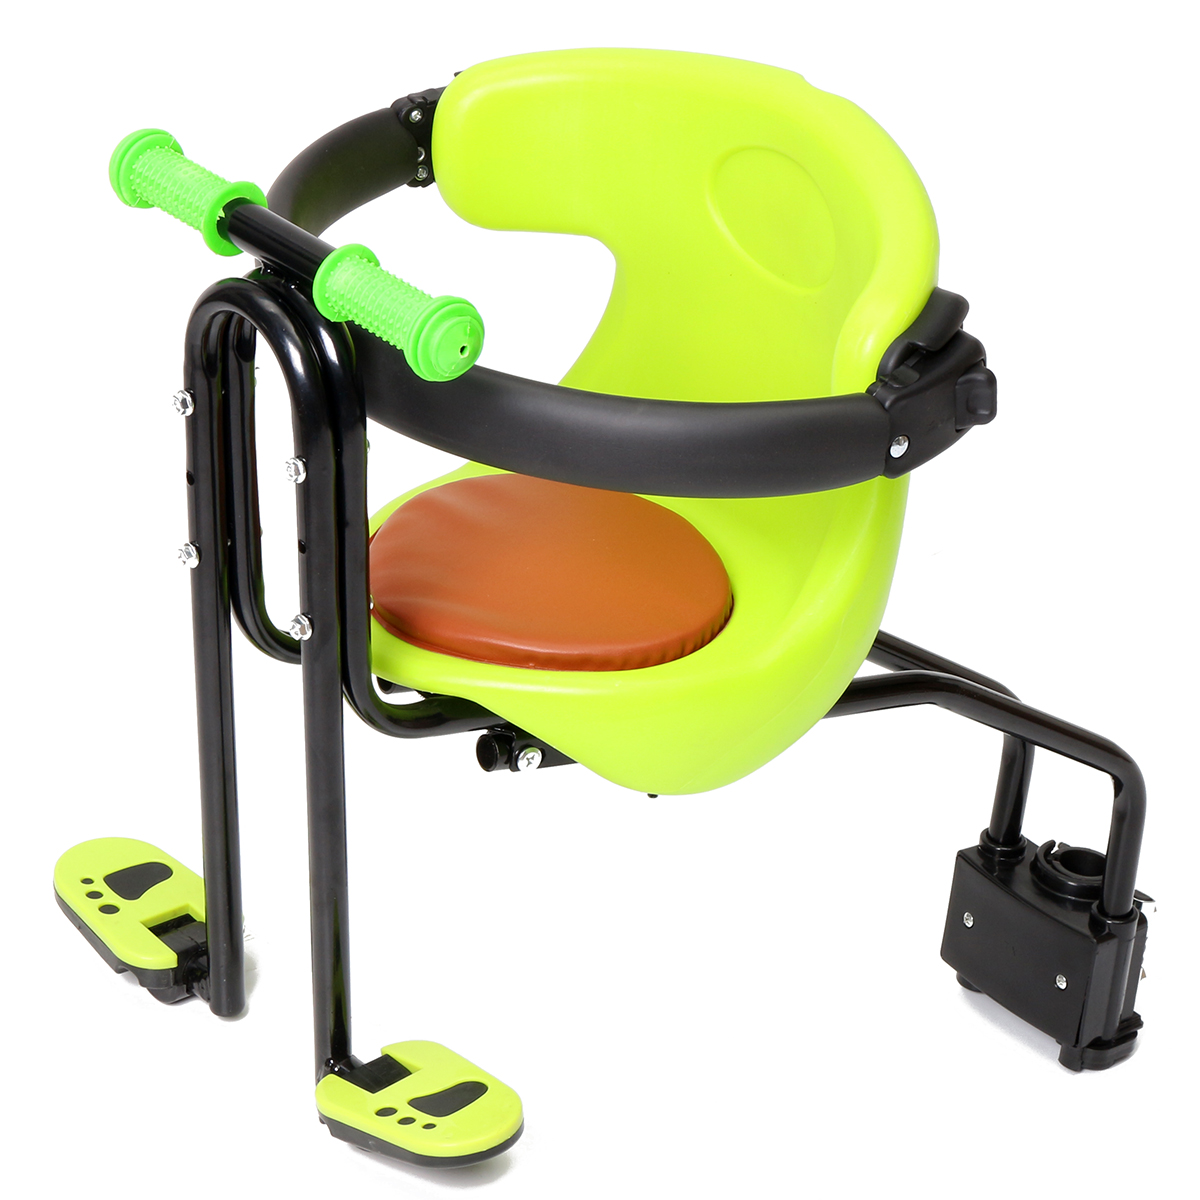 Safety & Stable Bicycle Baby Kids Child Front Baby Seat for Bicycle Carrier Up to 50Kg